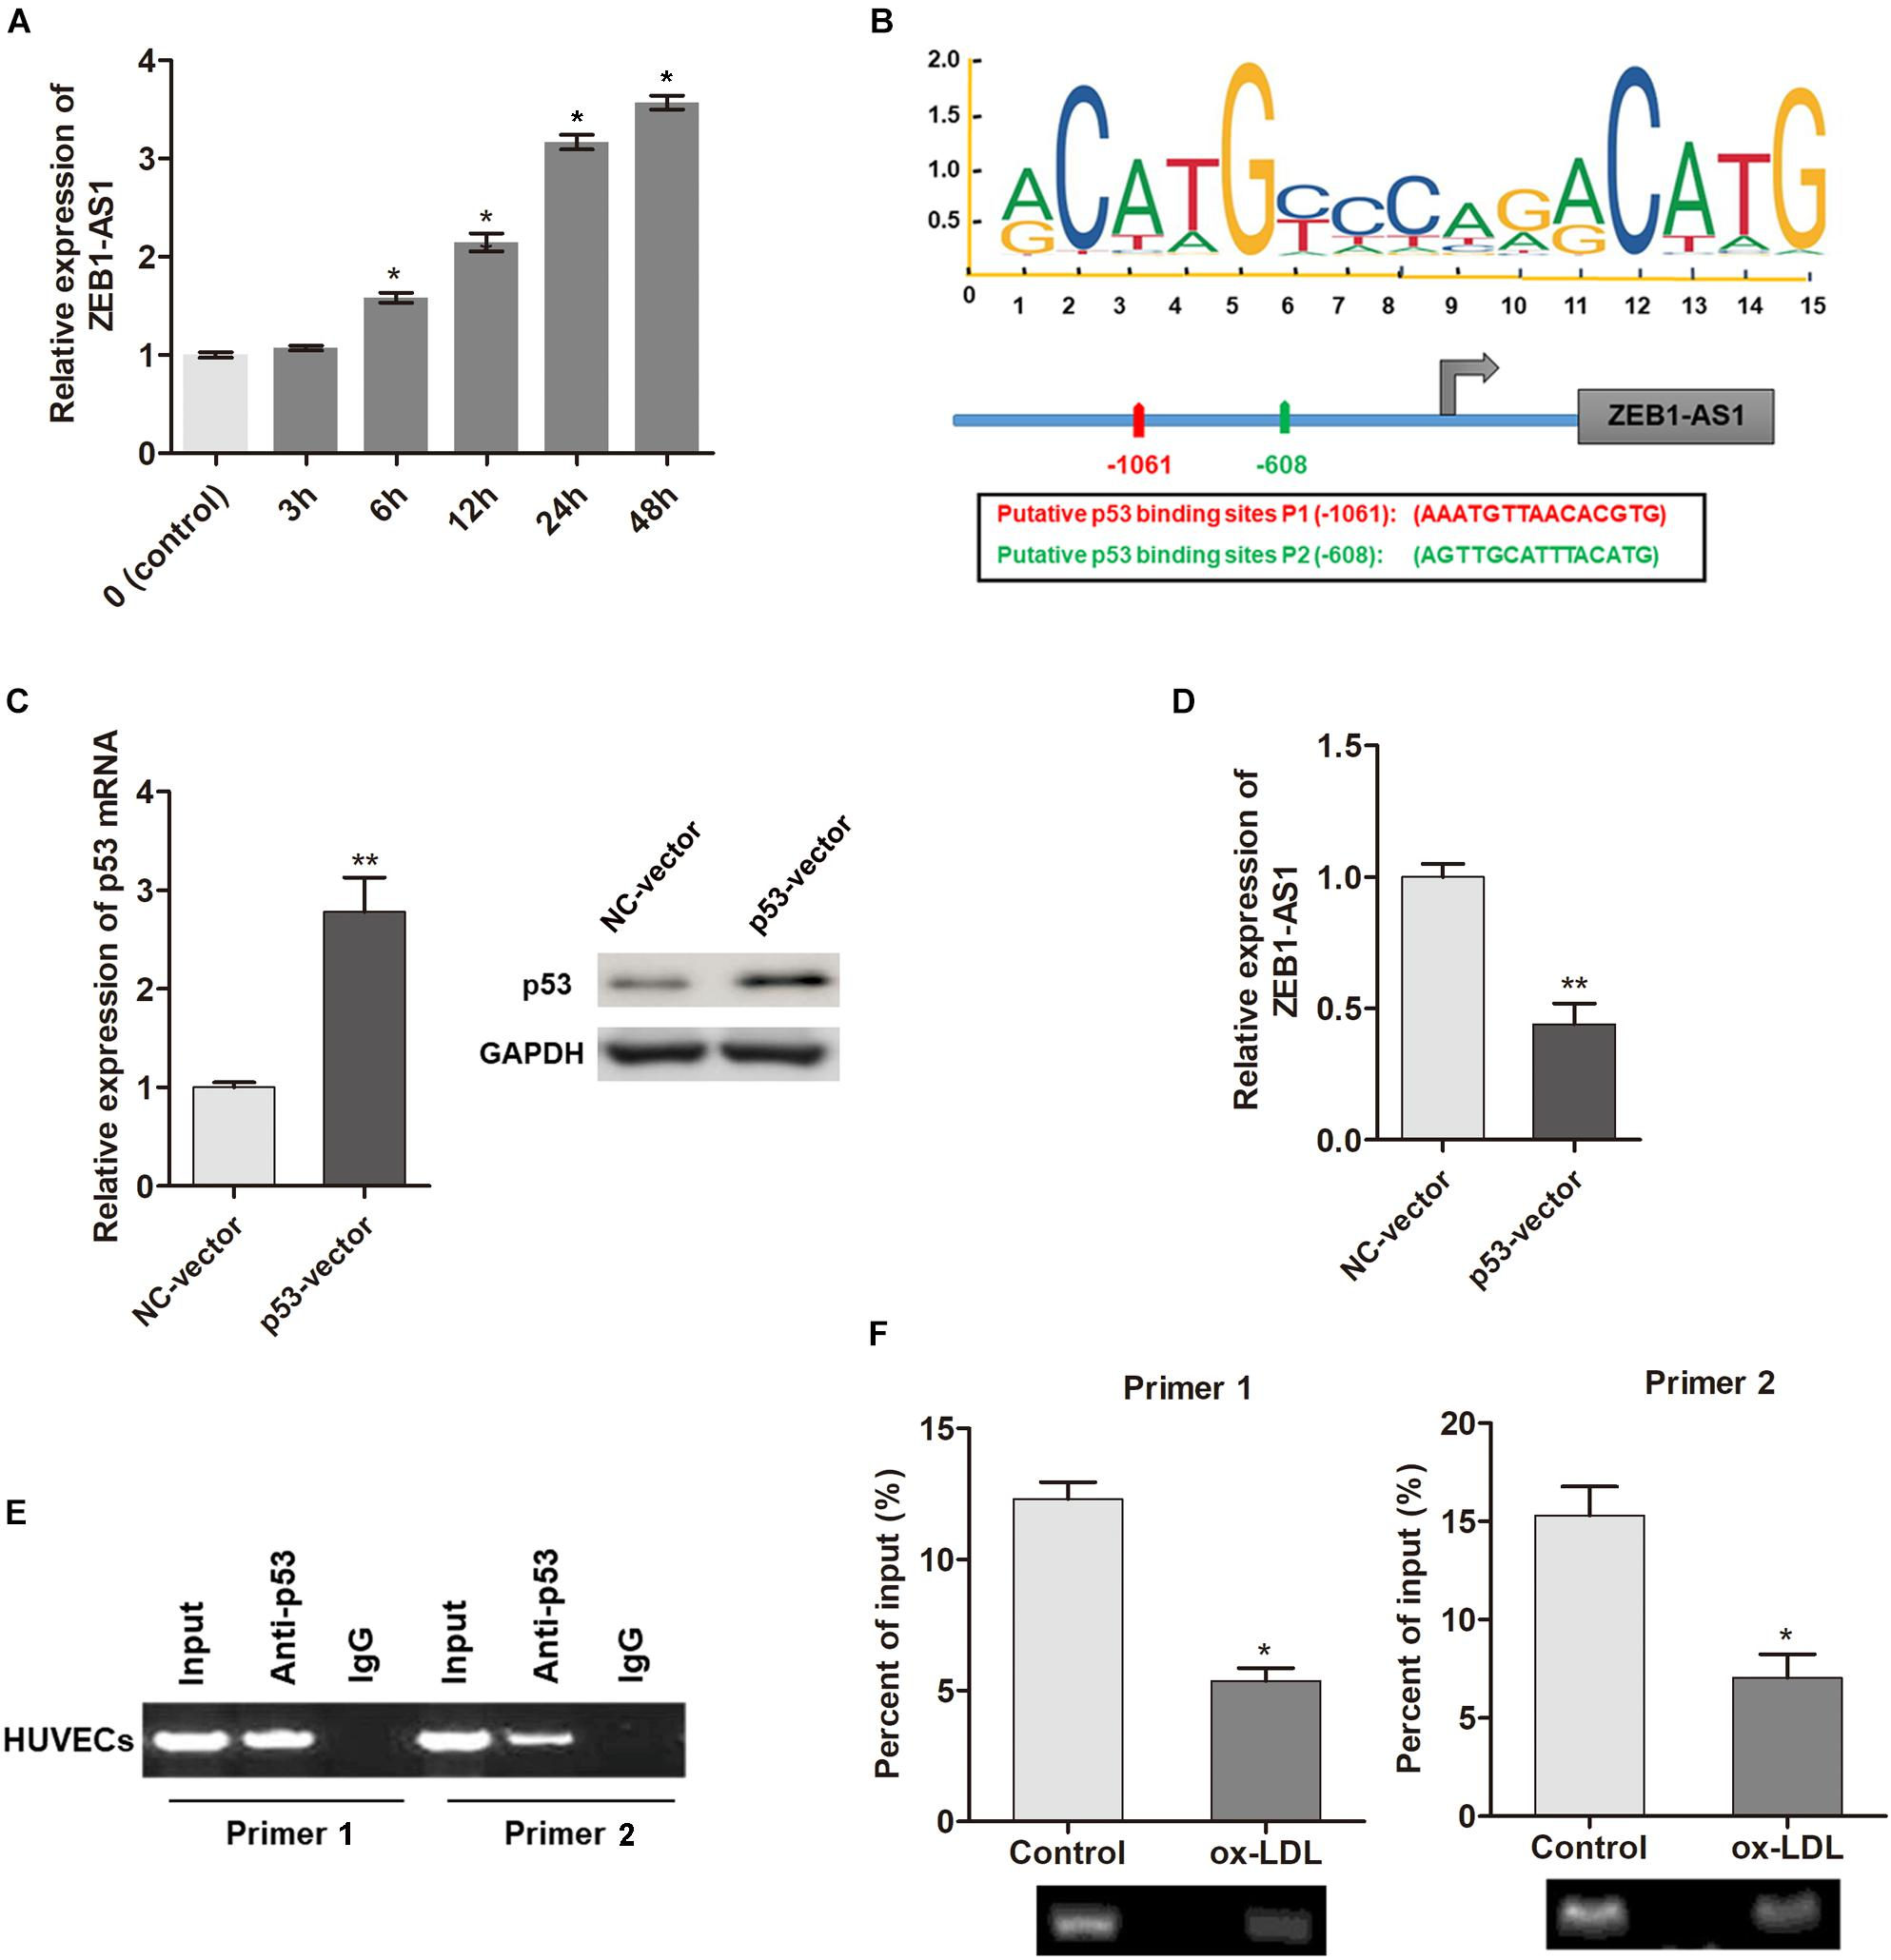 Frontiers | lncRNA ZEB1-AS1 Mediates Oxidative Low-Density